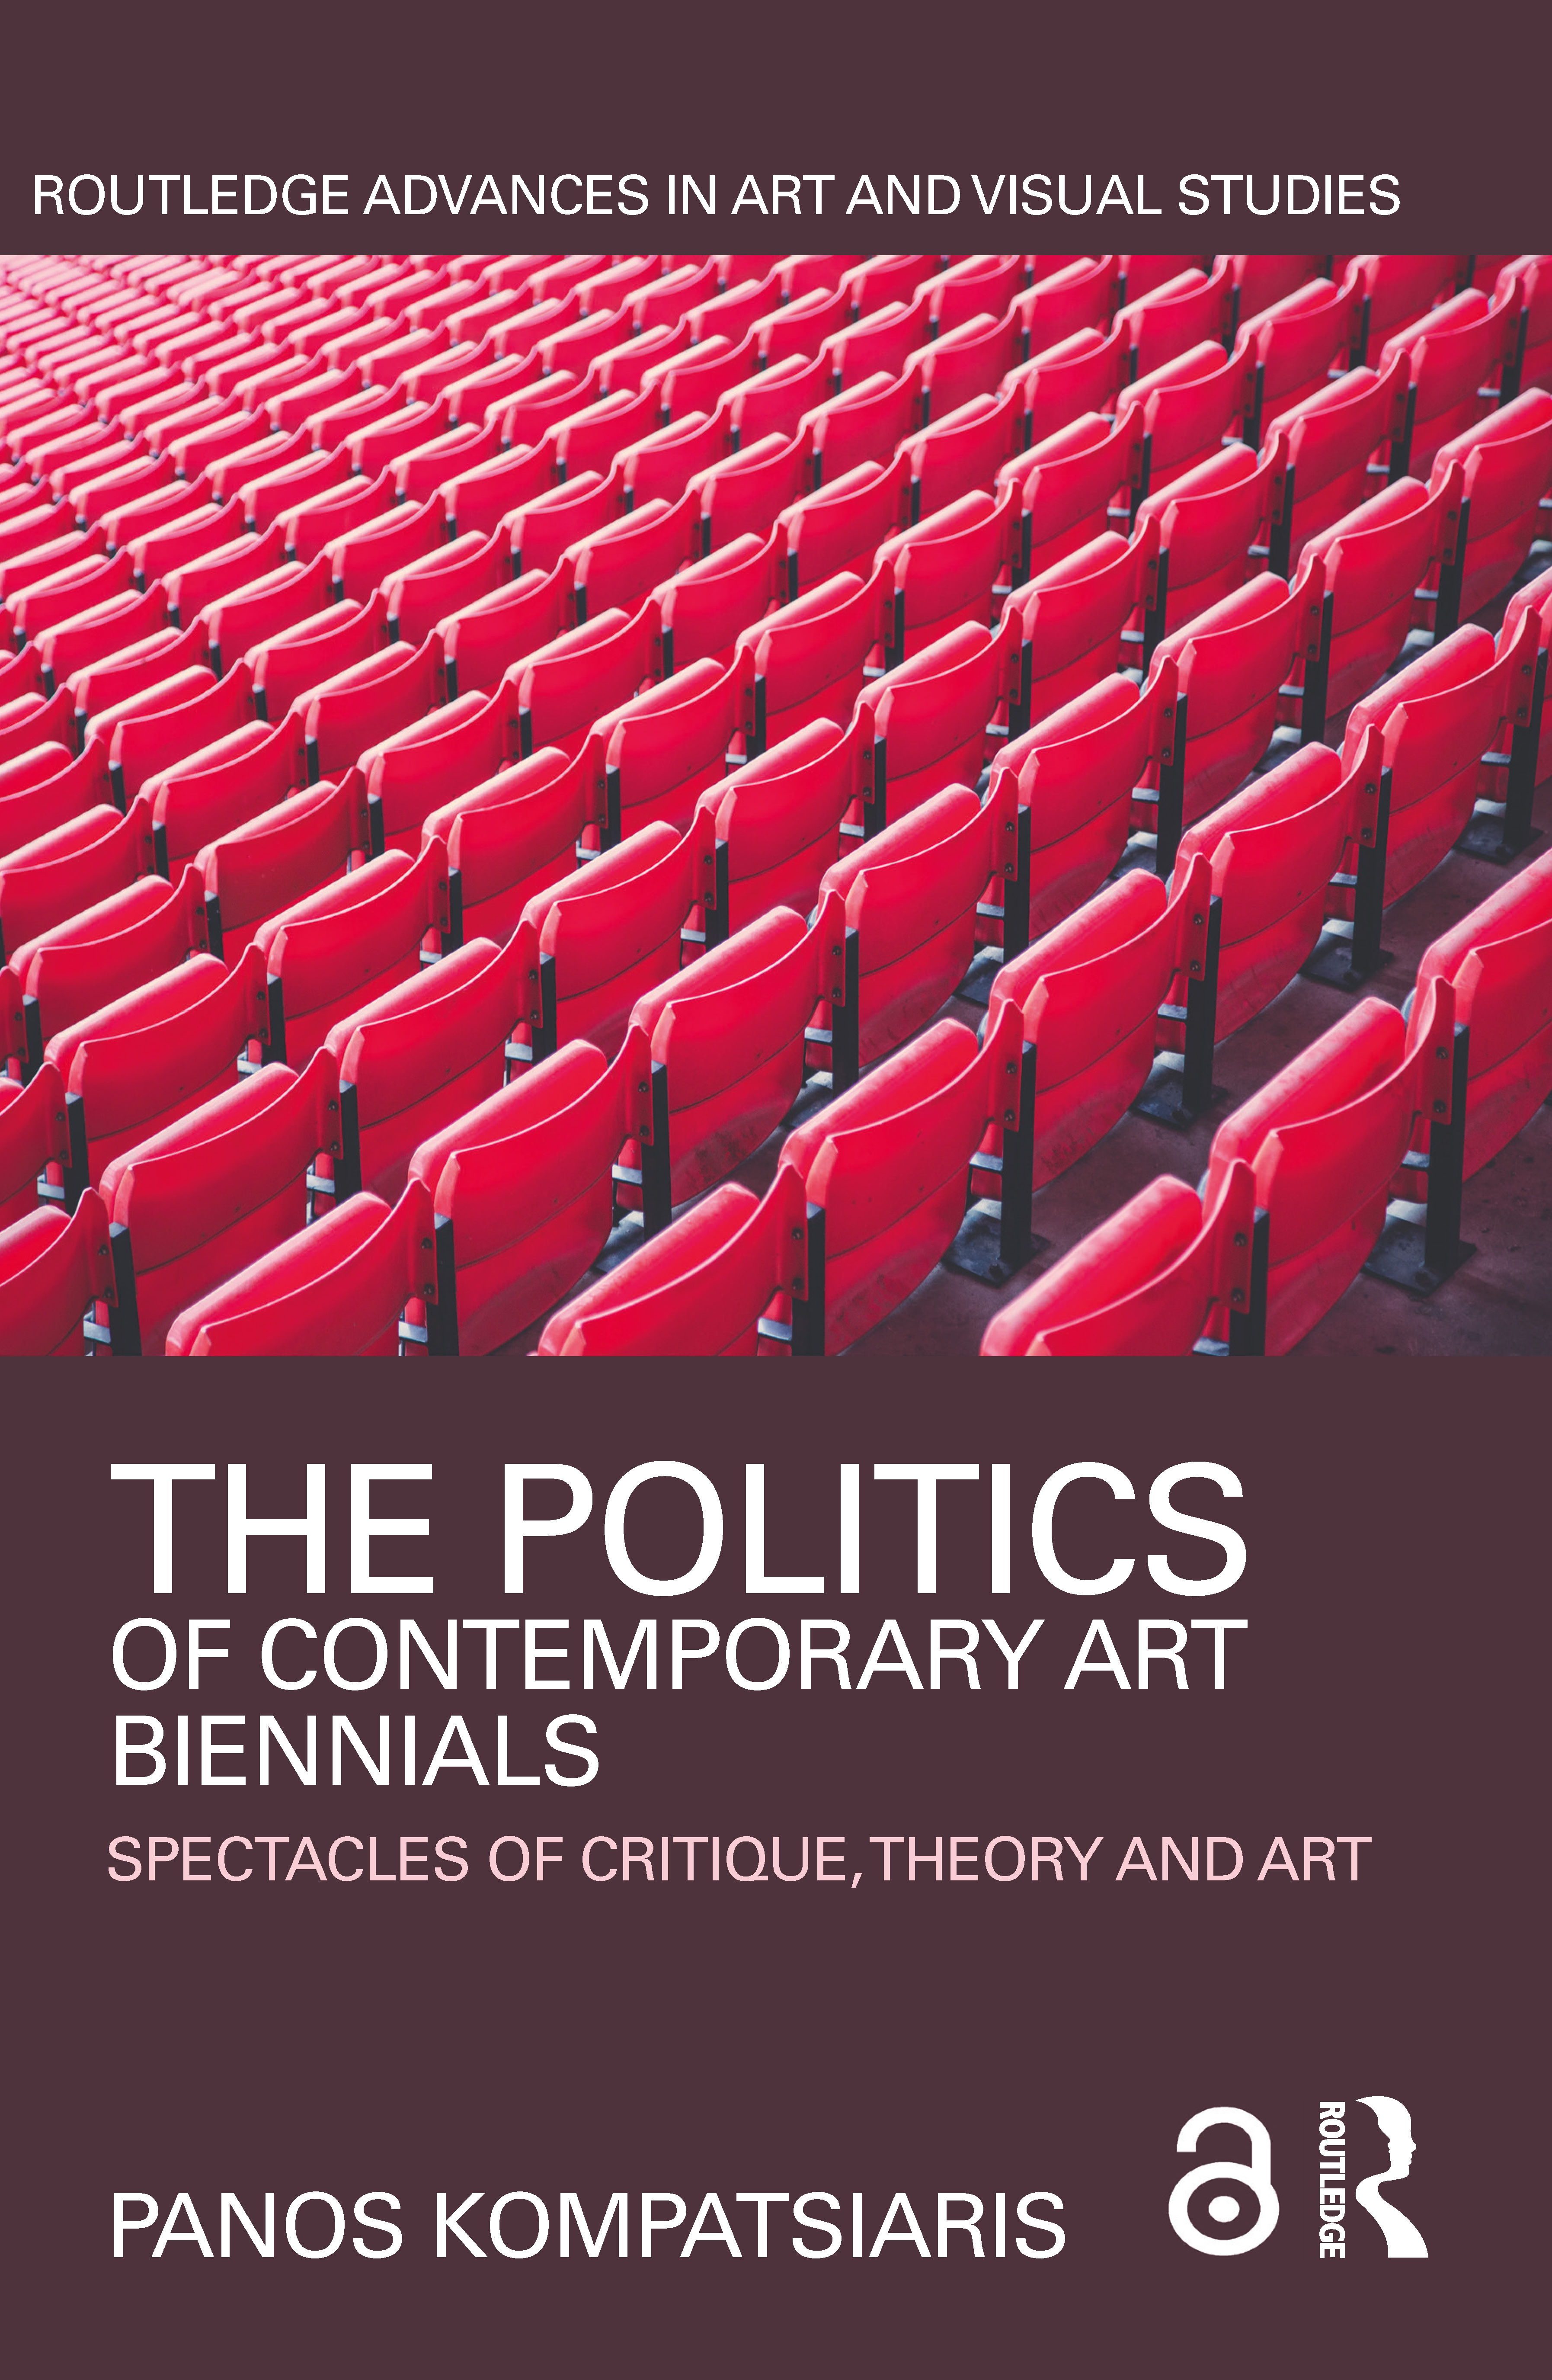 The Politics of Contemporary Art Biennials: Spectacles of Critique, Theory and Art book cover